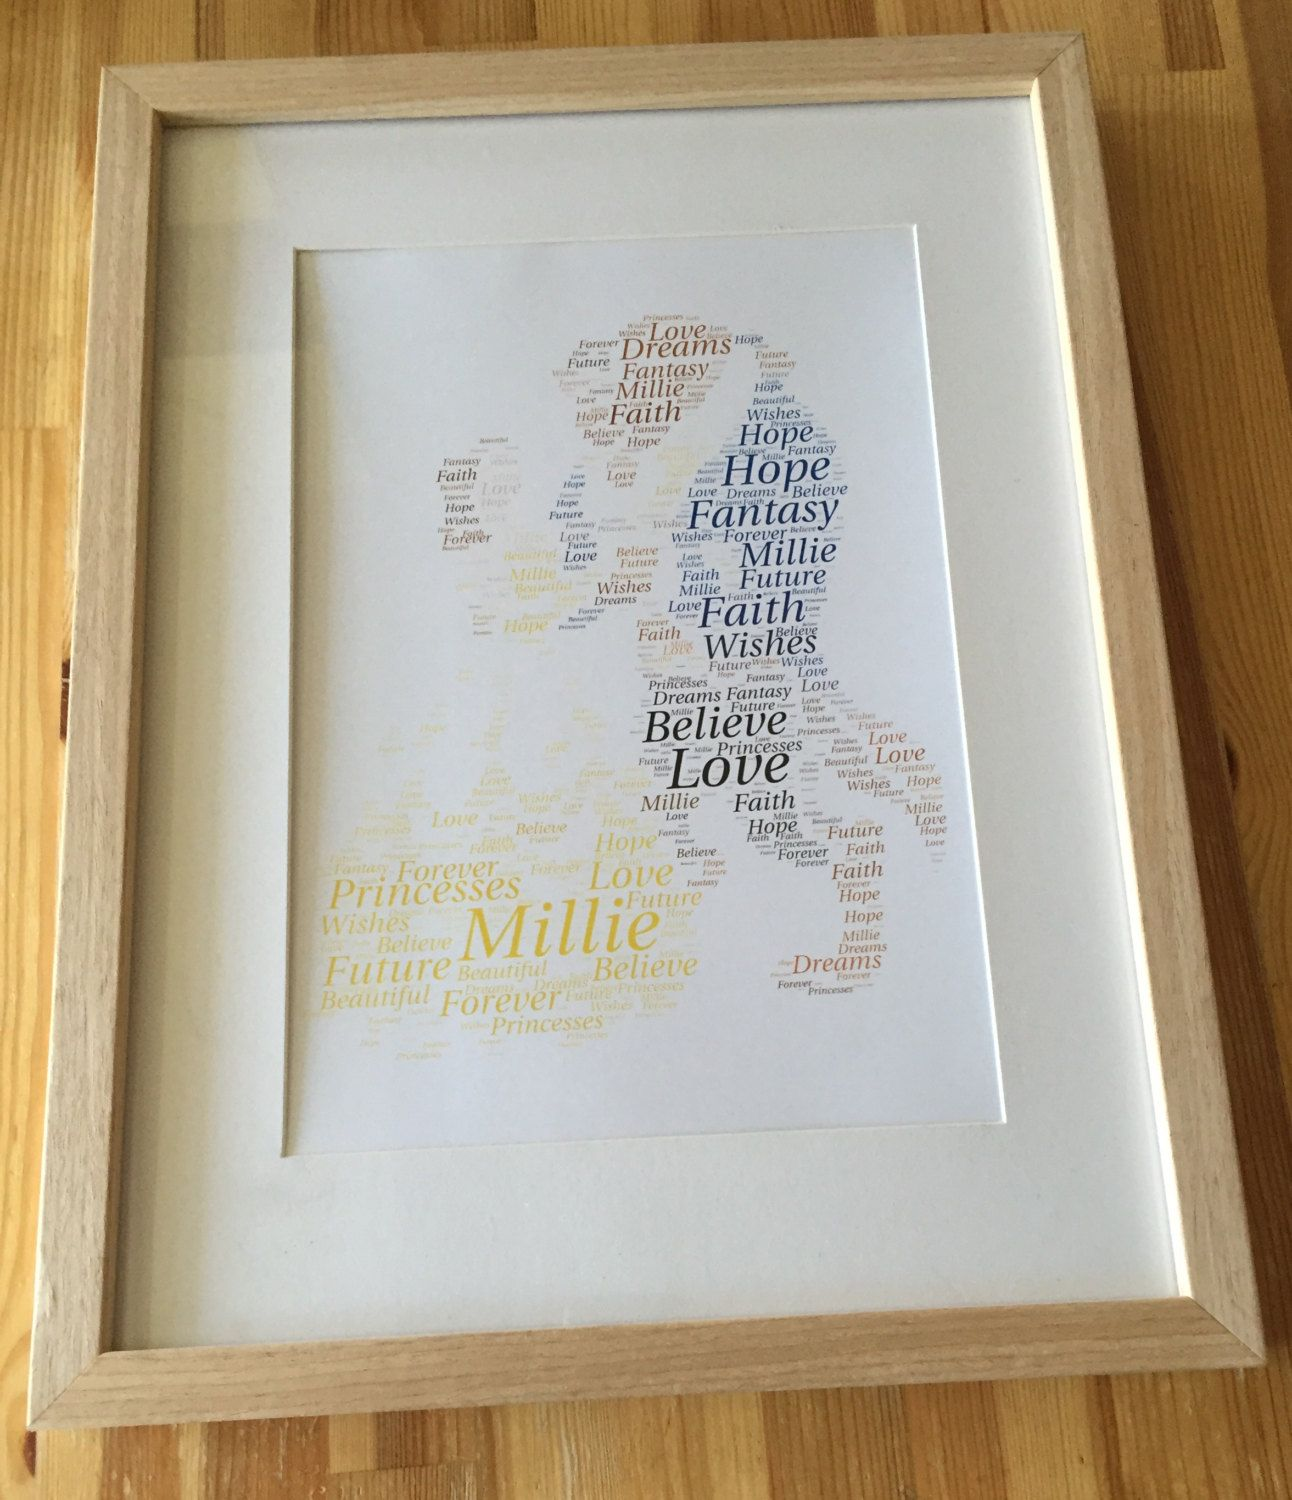 Framed Word Art Beauty And The Beast Disney Personalised Great Gift Idea For All Occasions Girls Birthday